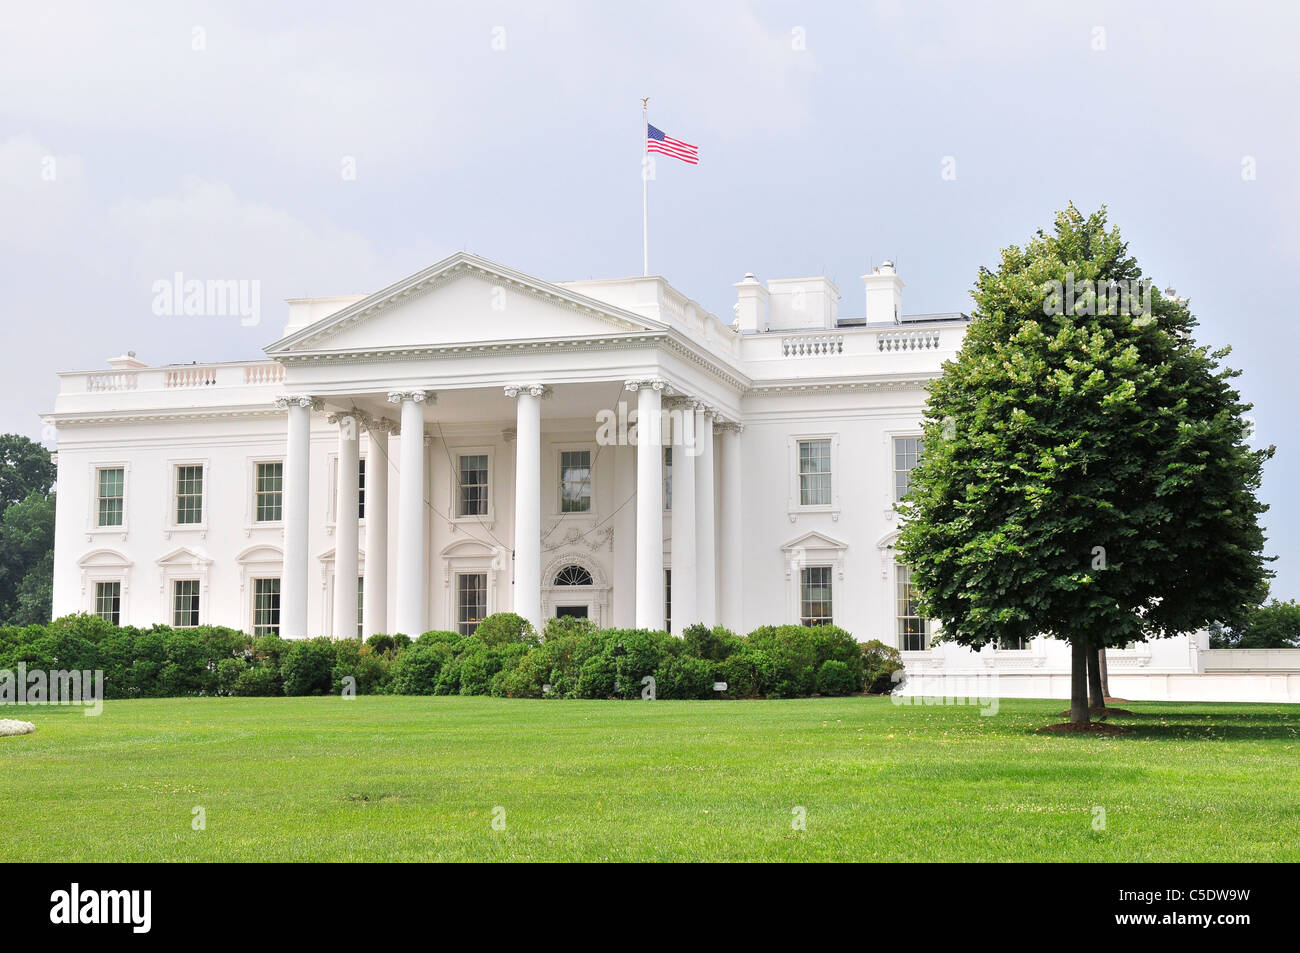 The White House is the official residence and principal workplace of the President of the United States. - Stock Image